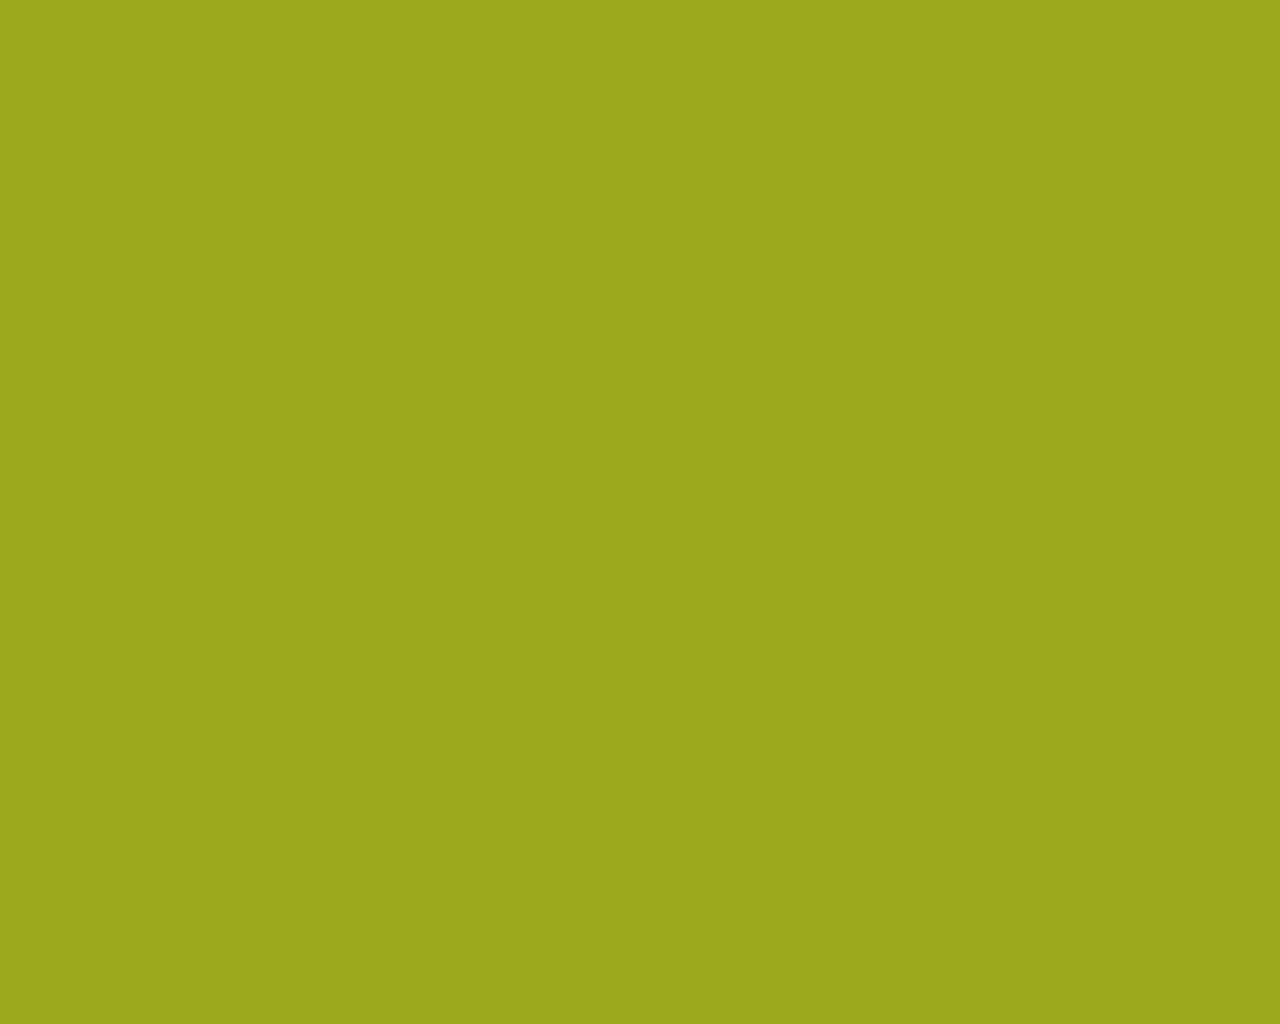 1280x1024 Citron Solid Color Background